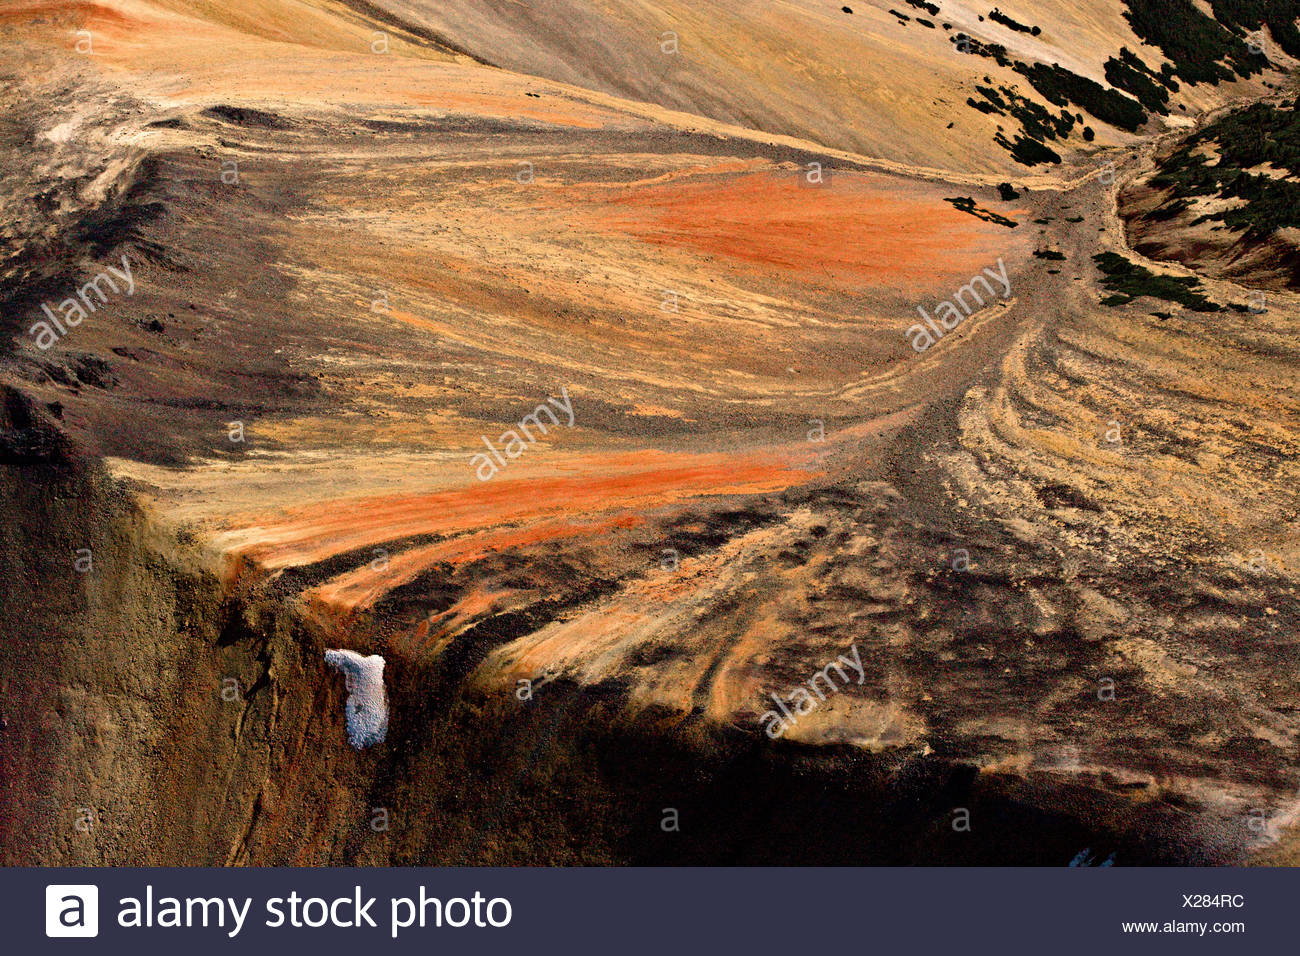 volcanic landscape in the Rainbow Mountains of British Columbia Canada - Stock Image